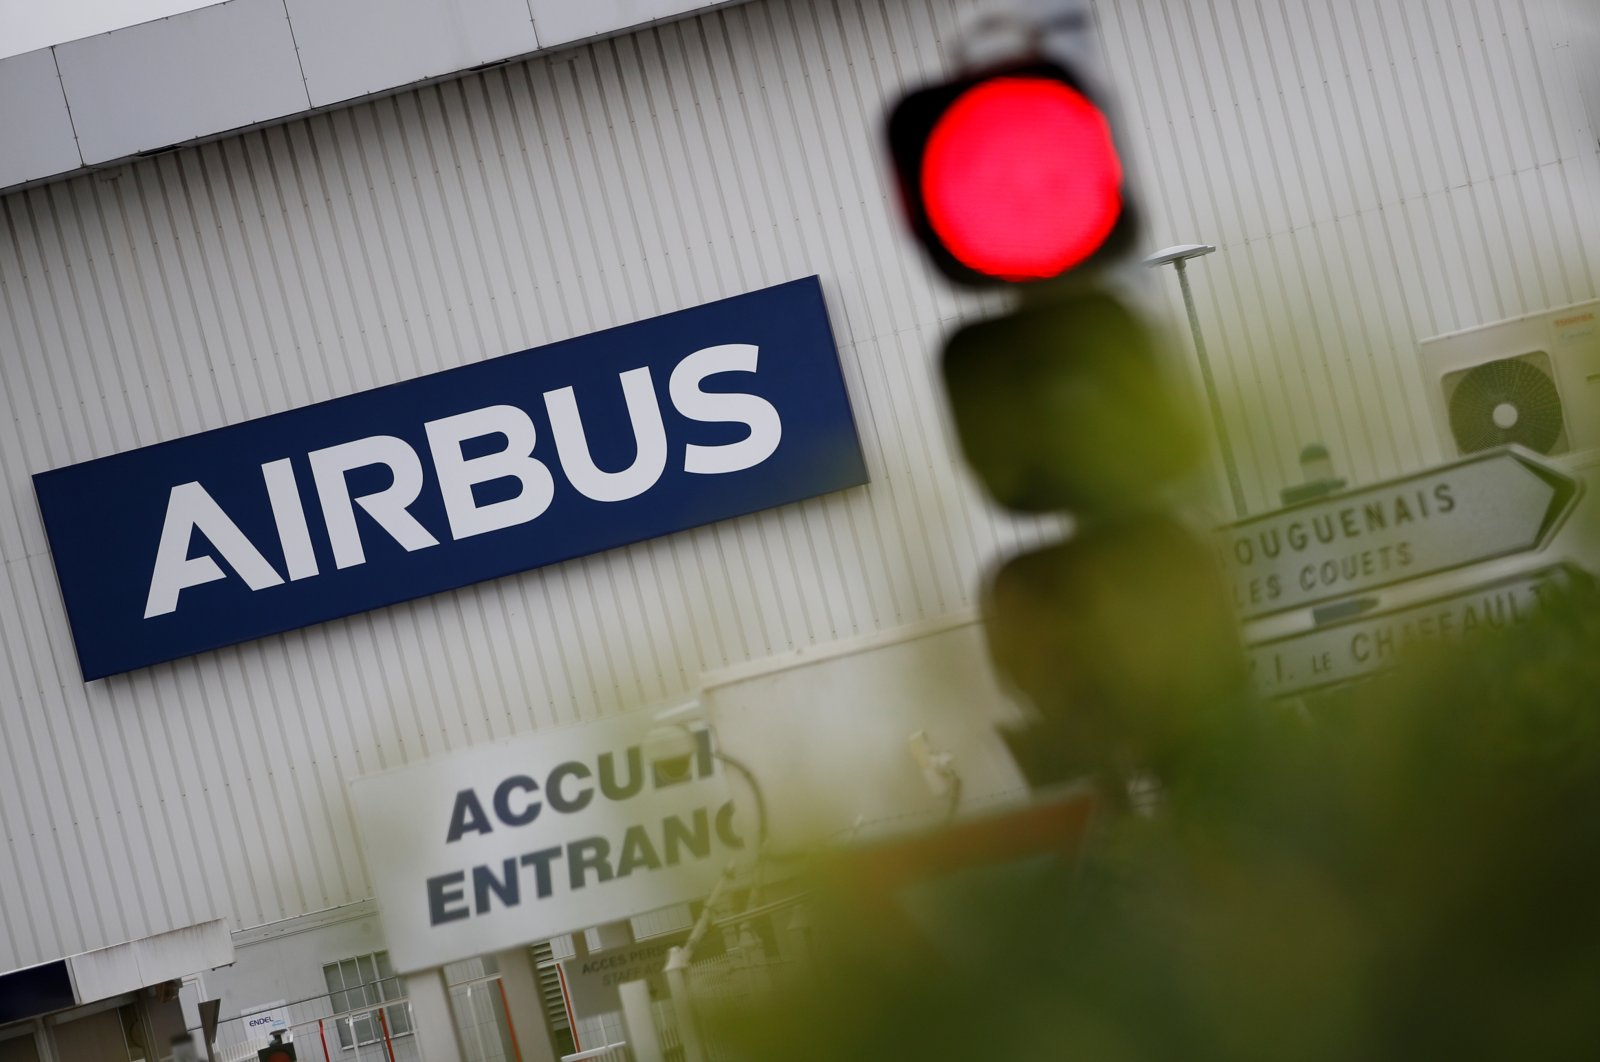 The logo of Airbus is pictured at the entrance of the Airbus facility in Bouguenais, near Nantes, France, June 30, 2020. (Reuters Photo)